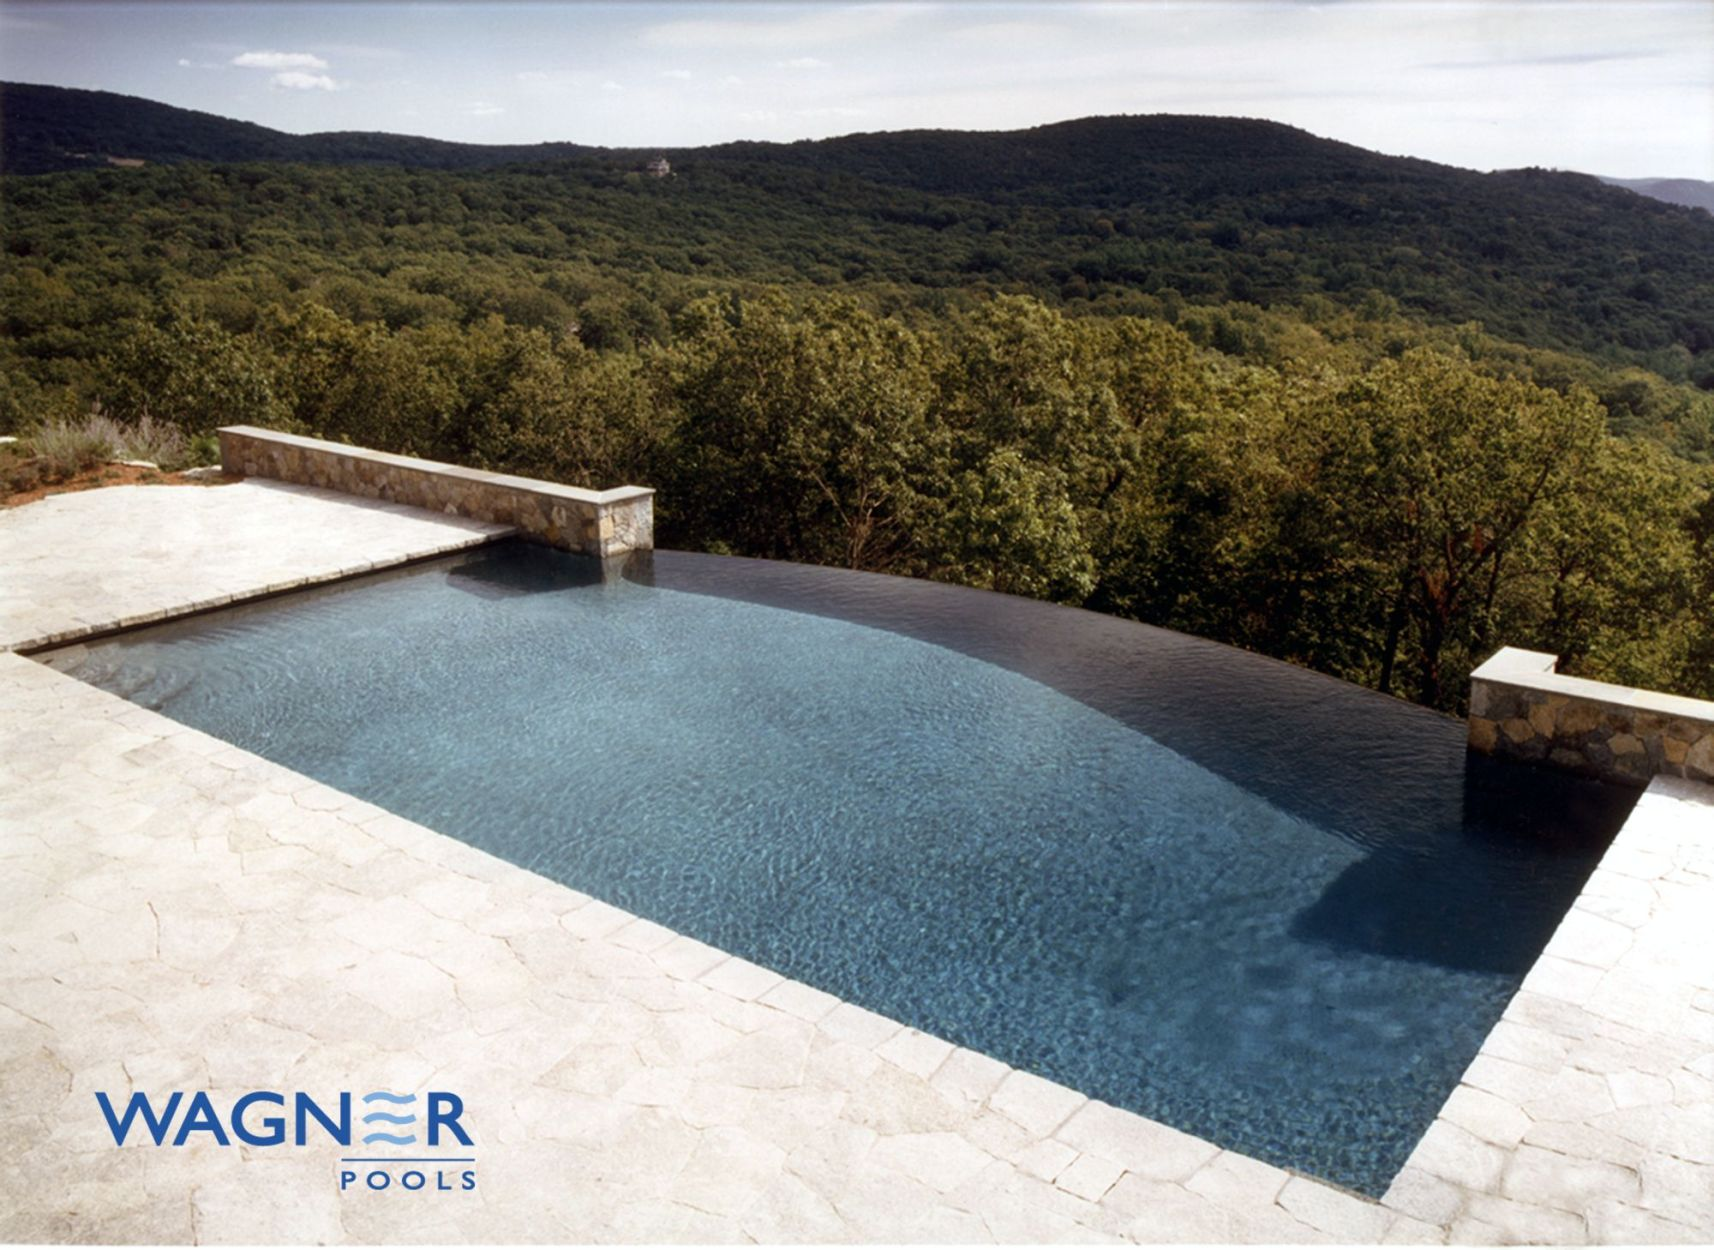 Vanishing edge swimming pools connecticut infinity pools in connecticut wagner pools - Infinity edge swimming pool ...